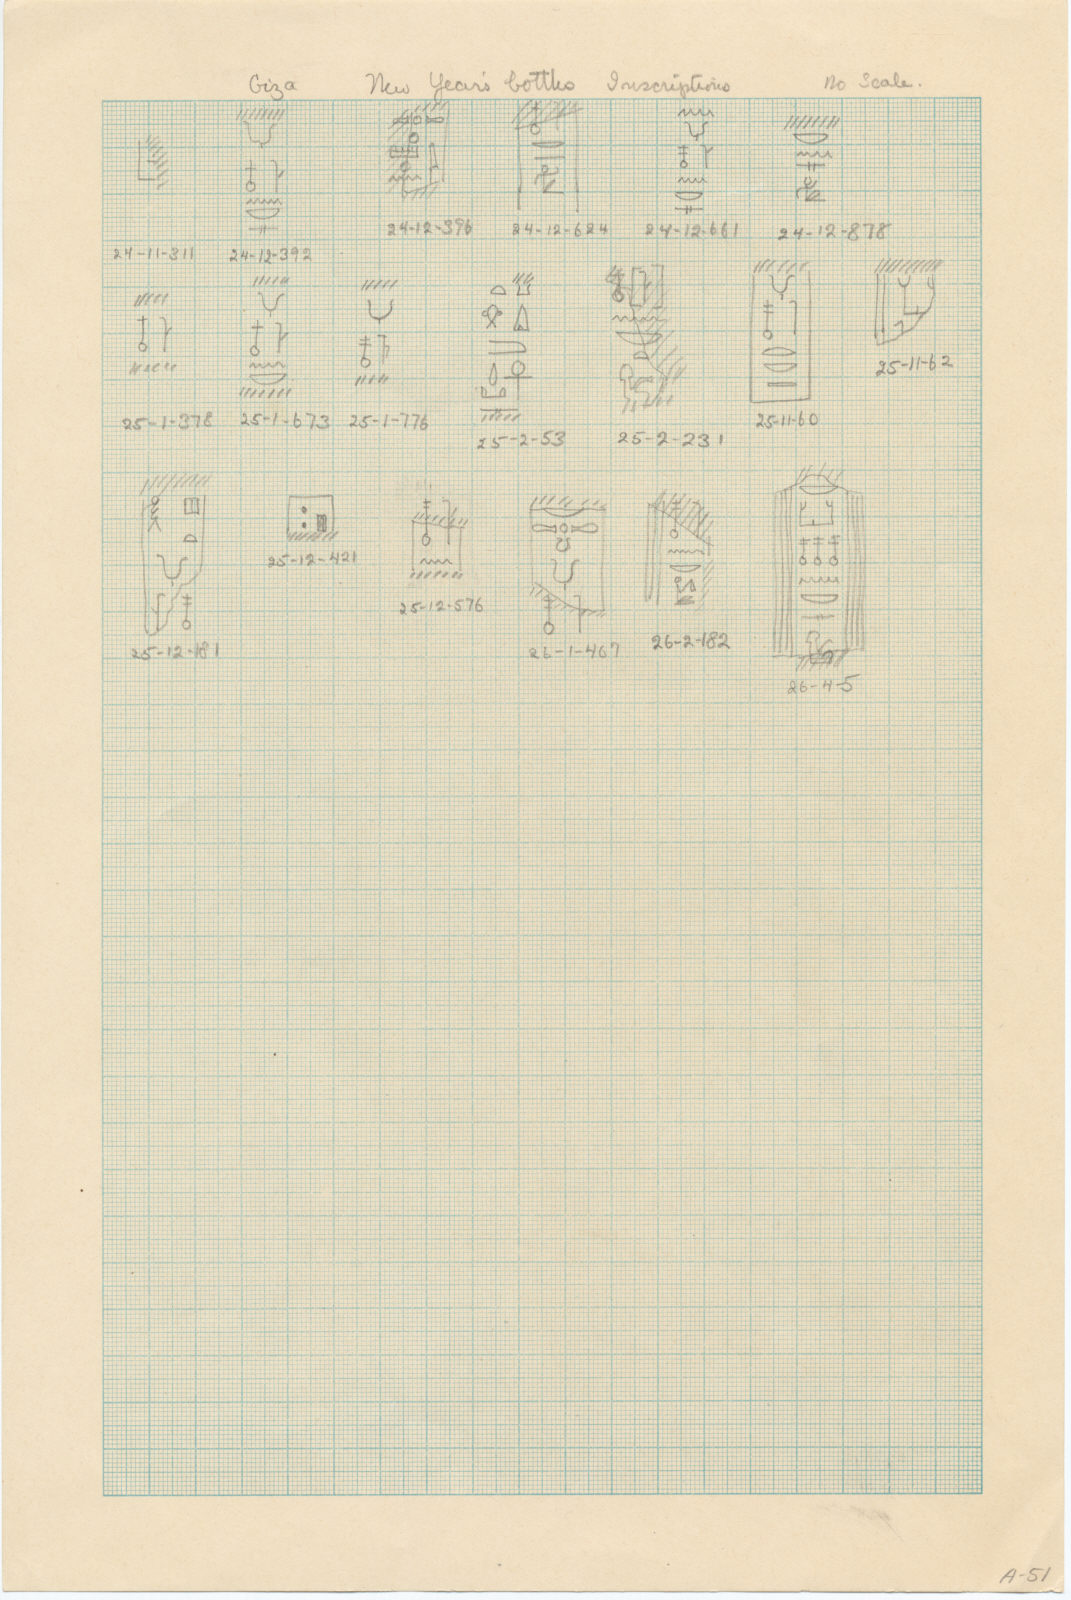 Drawings: inscriptions from fragments of New Year's Bottles form Avenue G 2, Avenue G 3, Street G 7100, Street G 7200, Street G 7300, Street G 7400, G 7110-7120, G 7150, G 7152, G 7210-7220, G 7230-7240, G 7310-7320, G 7410-7420, G 7430-7440, G 7510, G 7631, G I-b